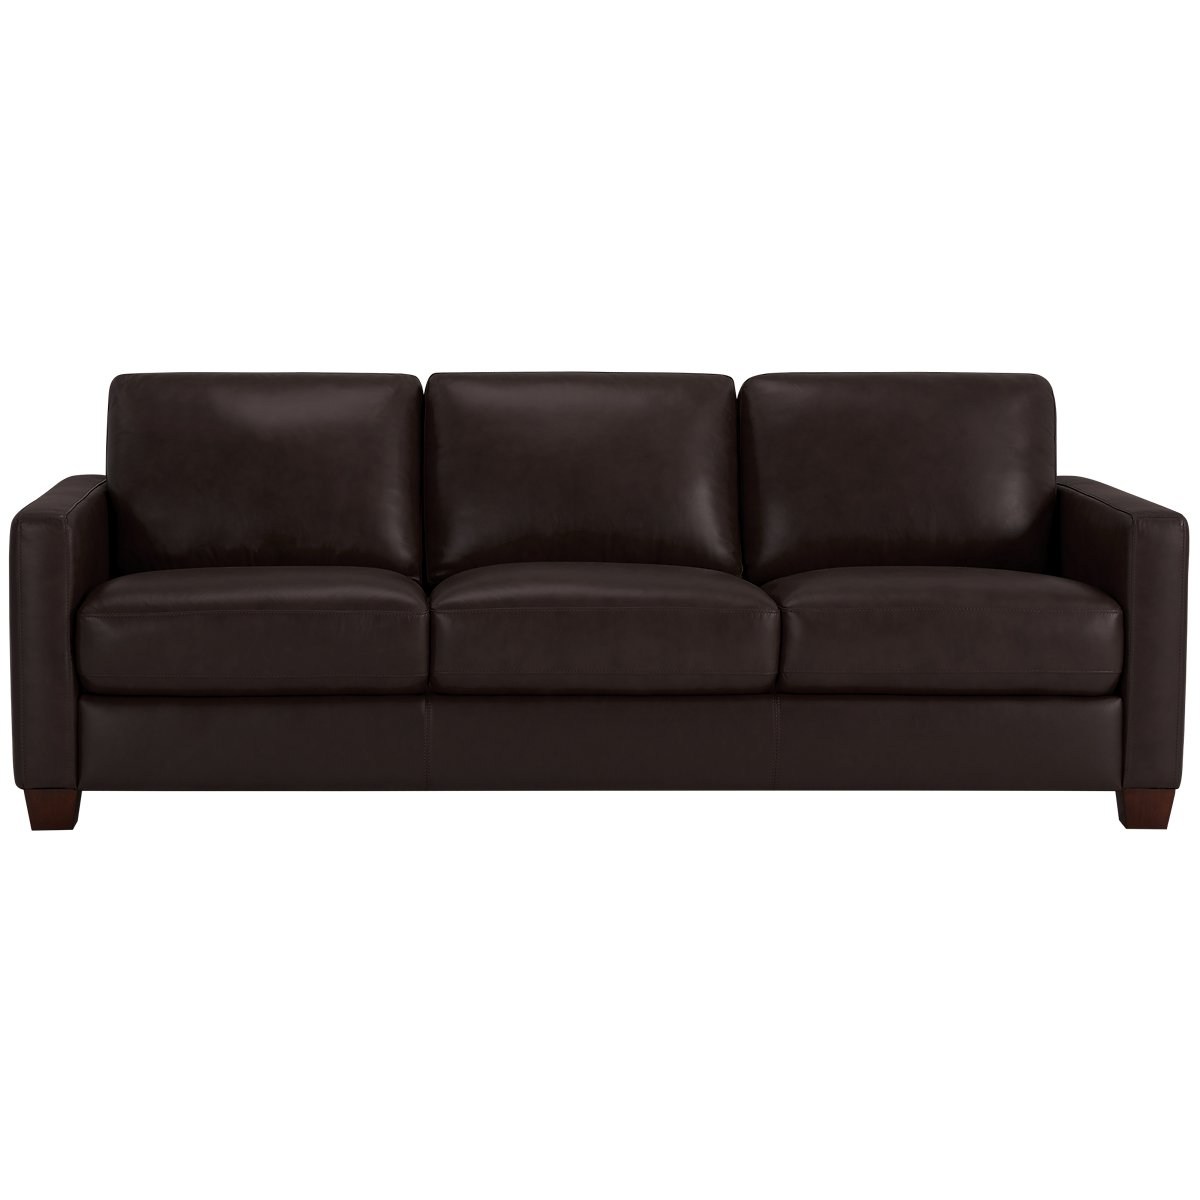 City Furniture Wesley Dark Brown Leather Sofa